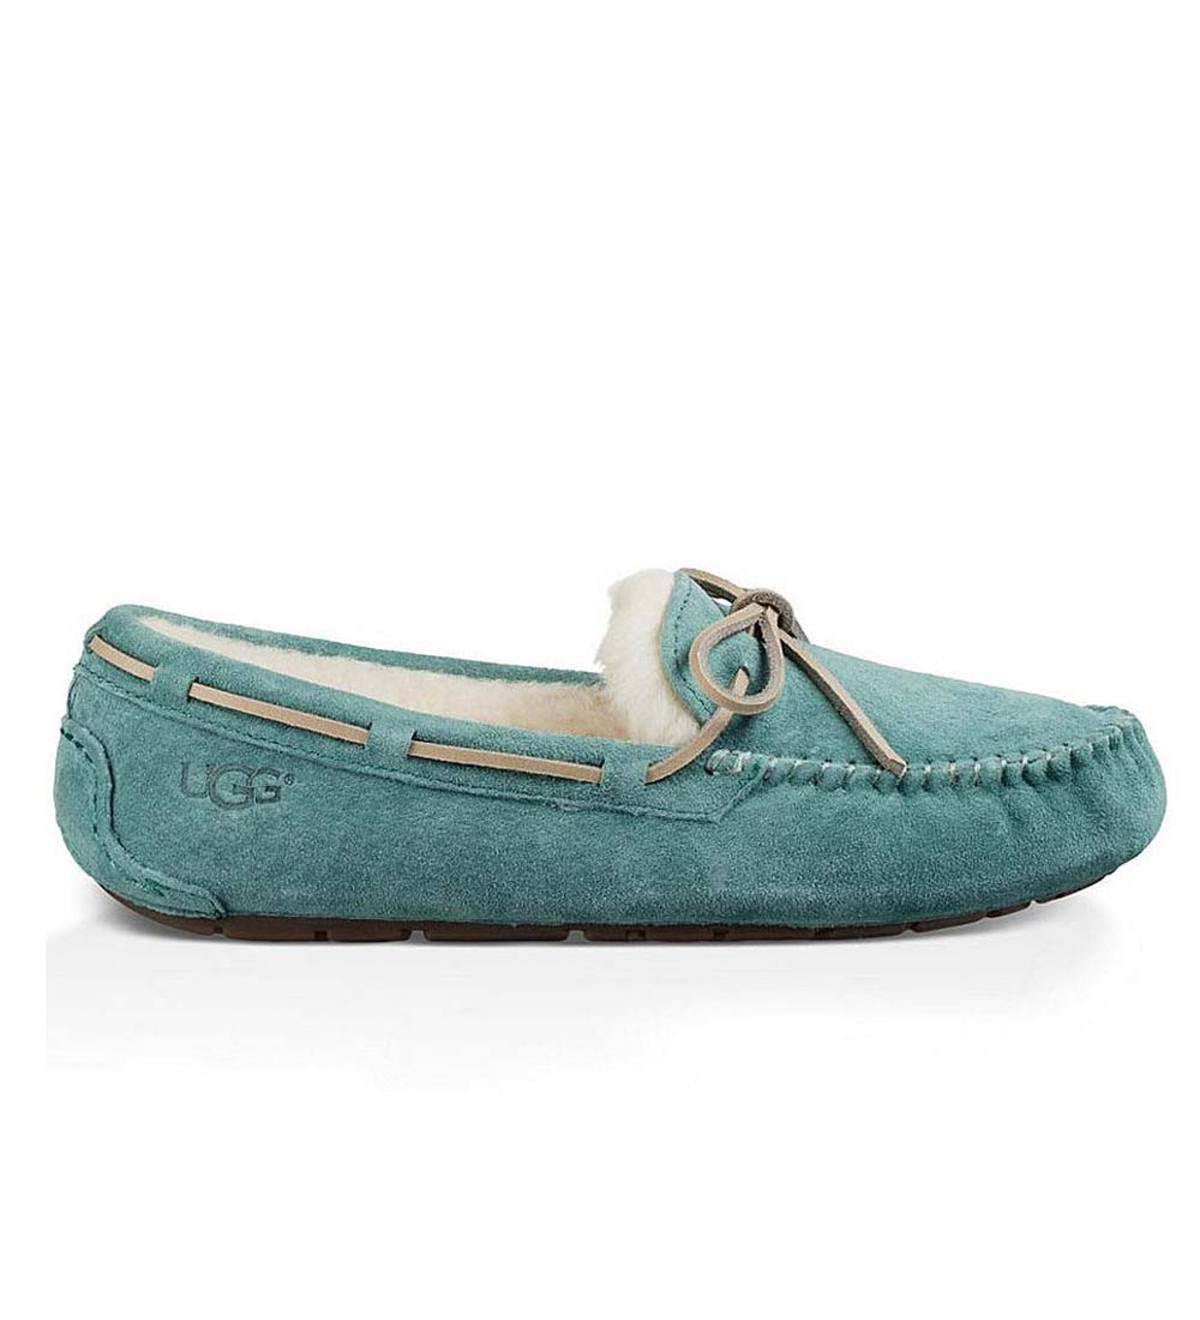 UGG Australia Womens Dakota Moccasin Slippers - Atlantic - Size 10